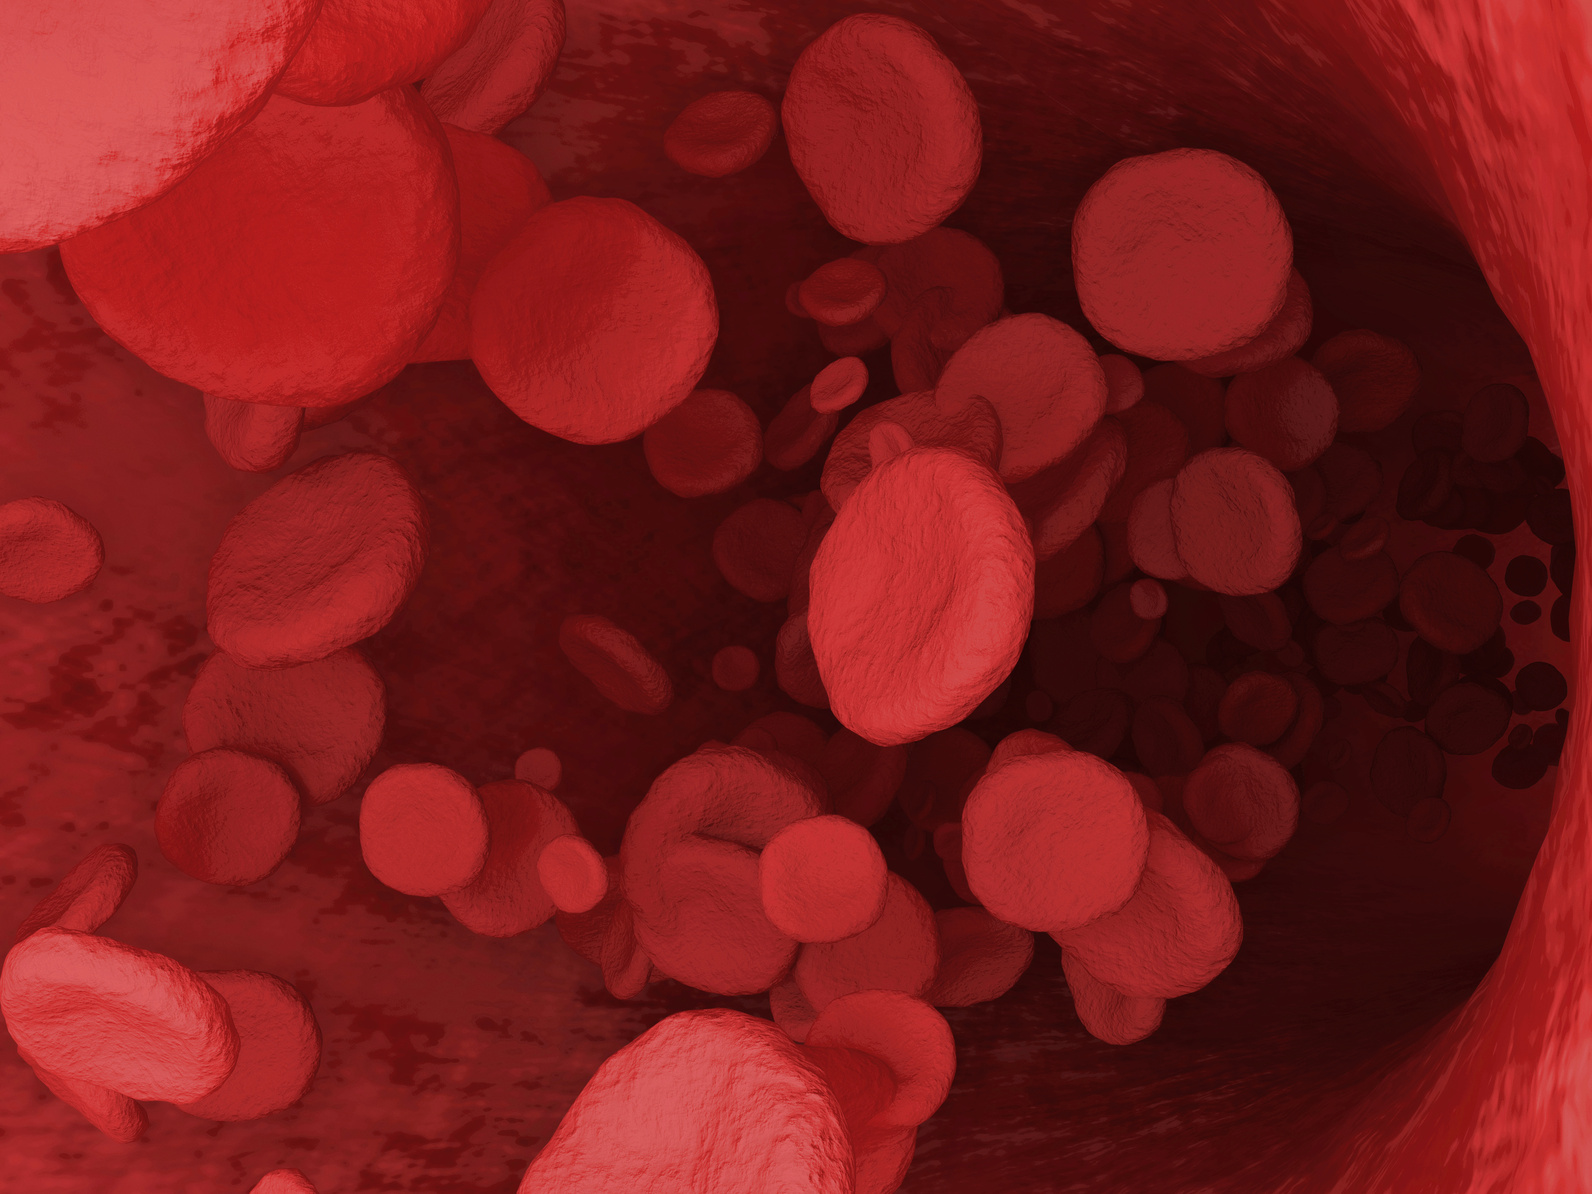 Digital Illustration of a Red Blood Cells Flowing Through Vein